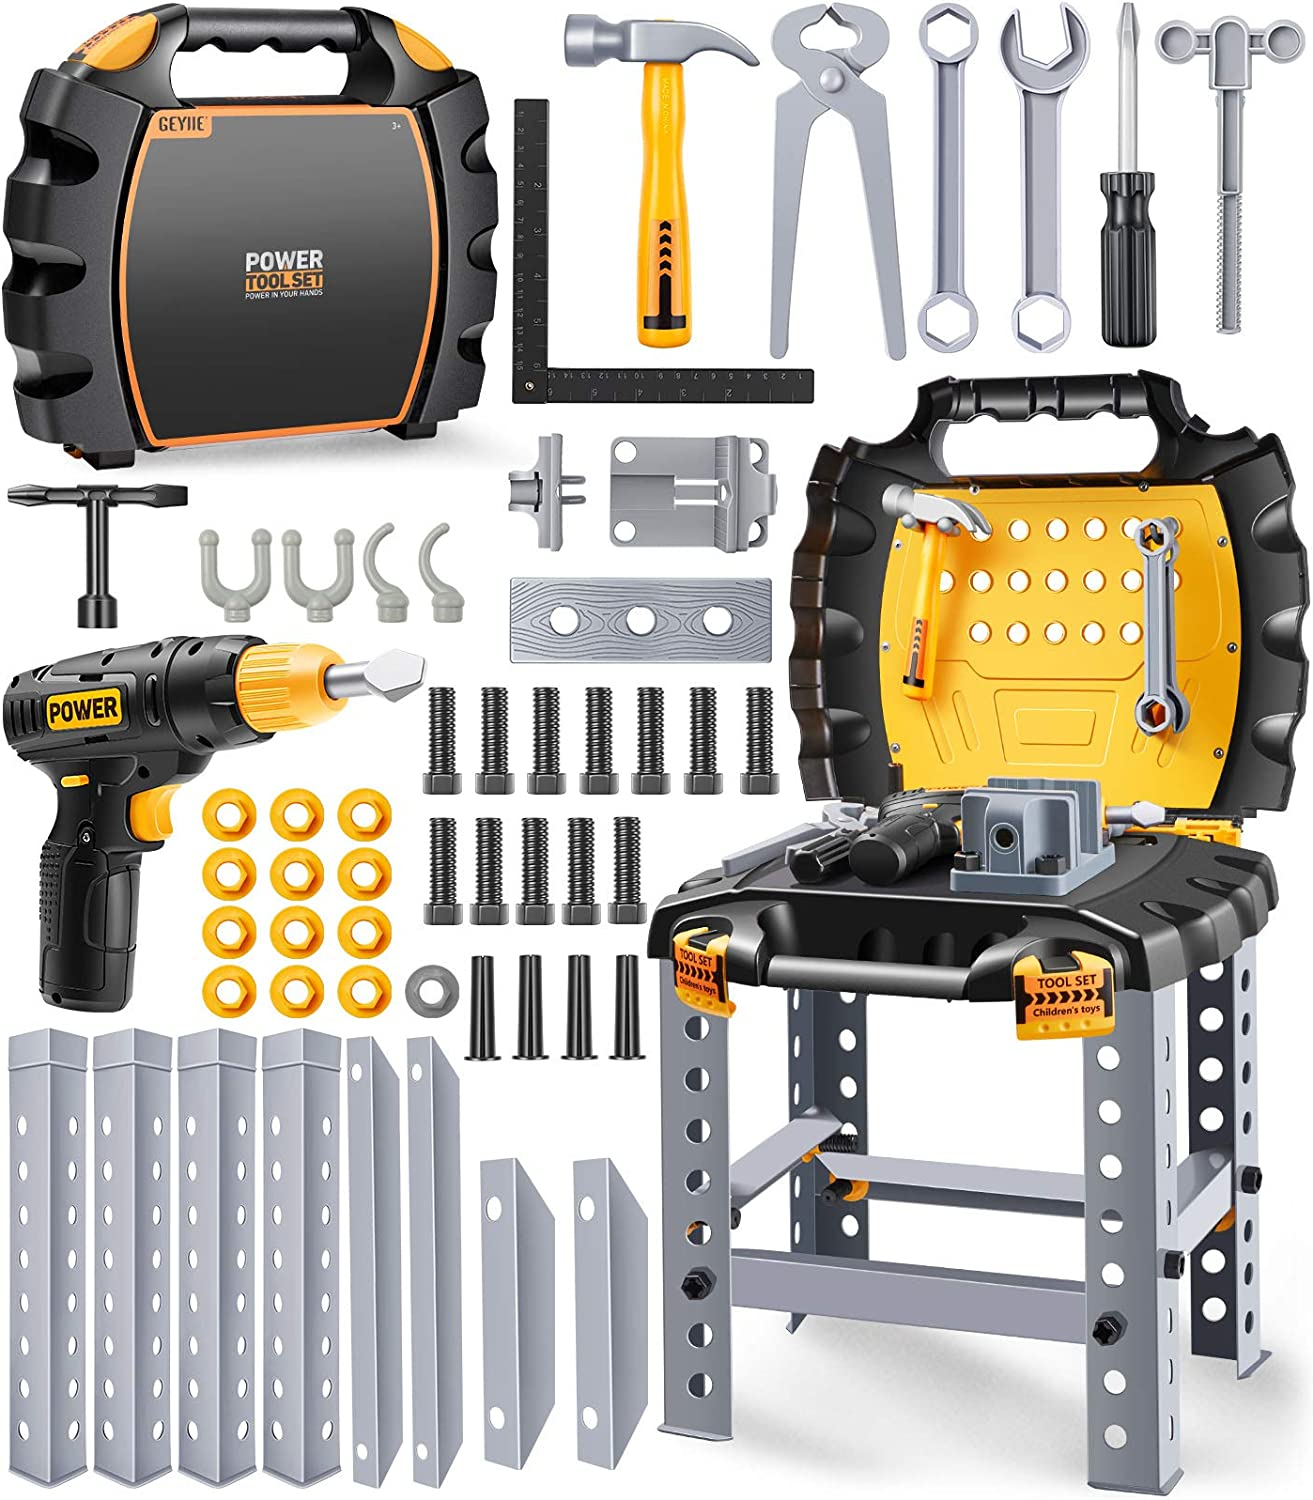 Geyiie Kids Tool Set Construction Workbench Toys,54 Pcs Tool Bench Kit Contains Realistic Power Drill and Other Accessaries Preschool Educational Toy Gift for Child Boys and Girls